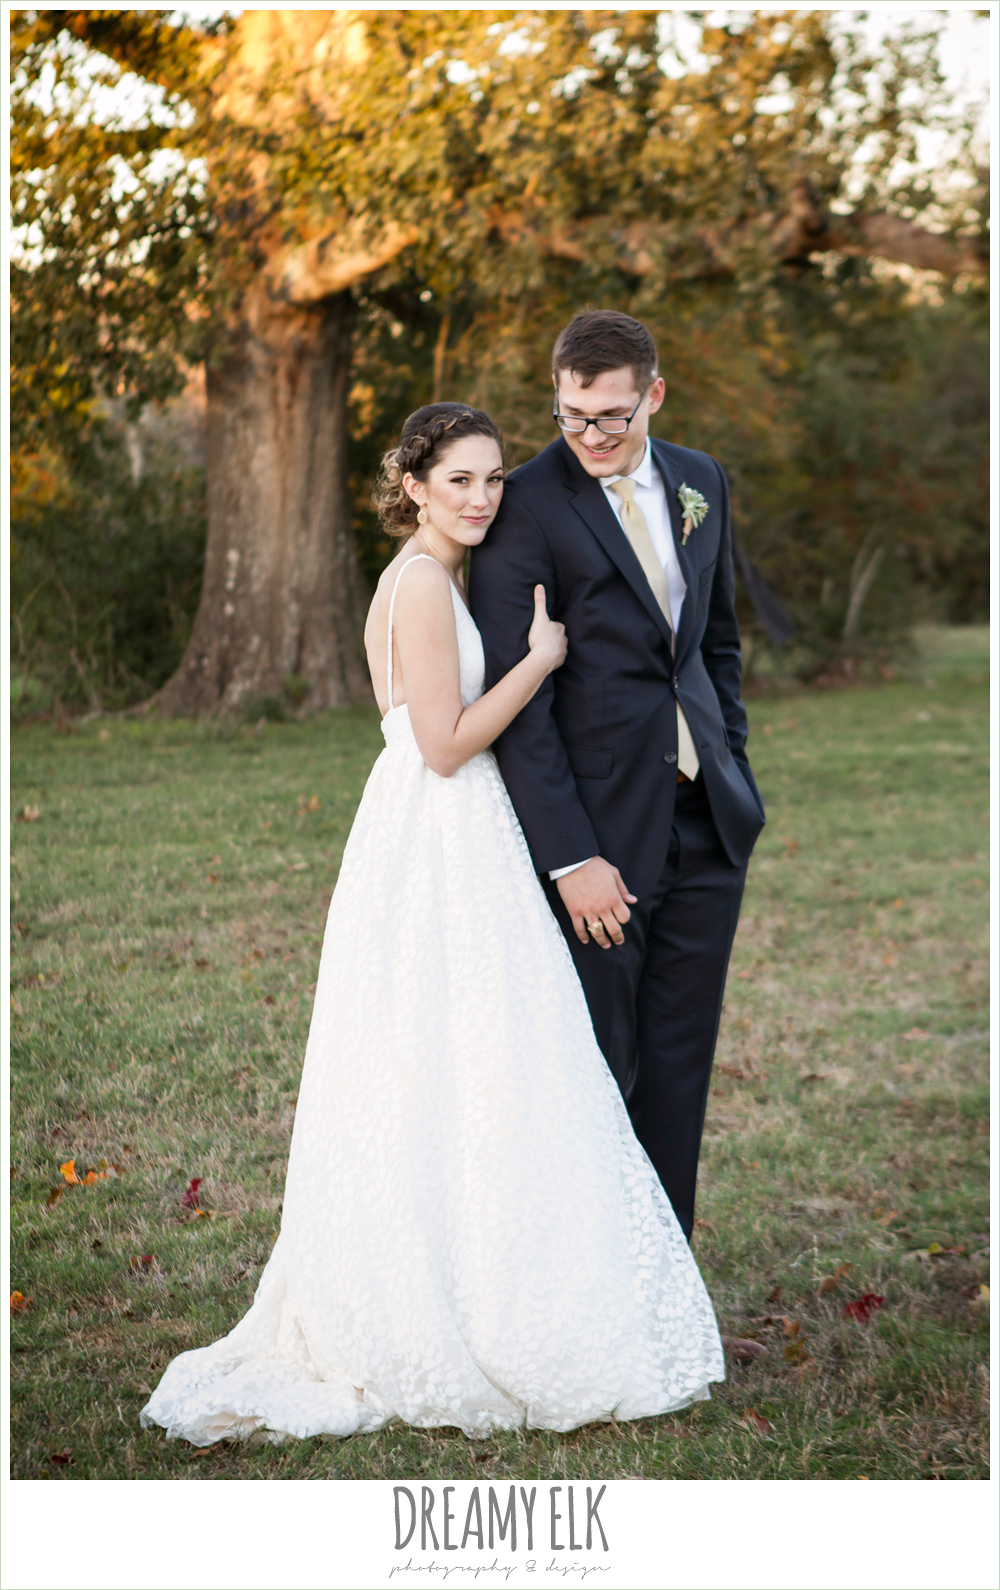 rustic chic wedding photo, the amish barn at edge {dreamy elk photography and design}